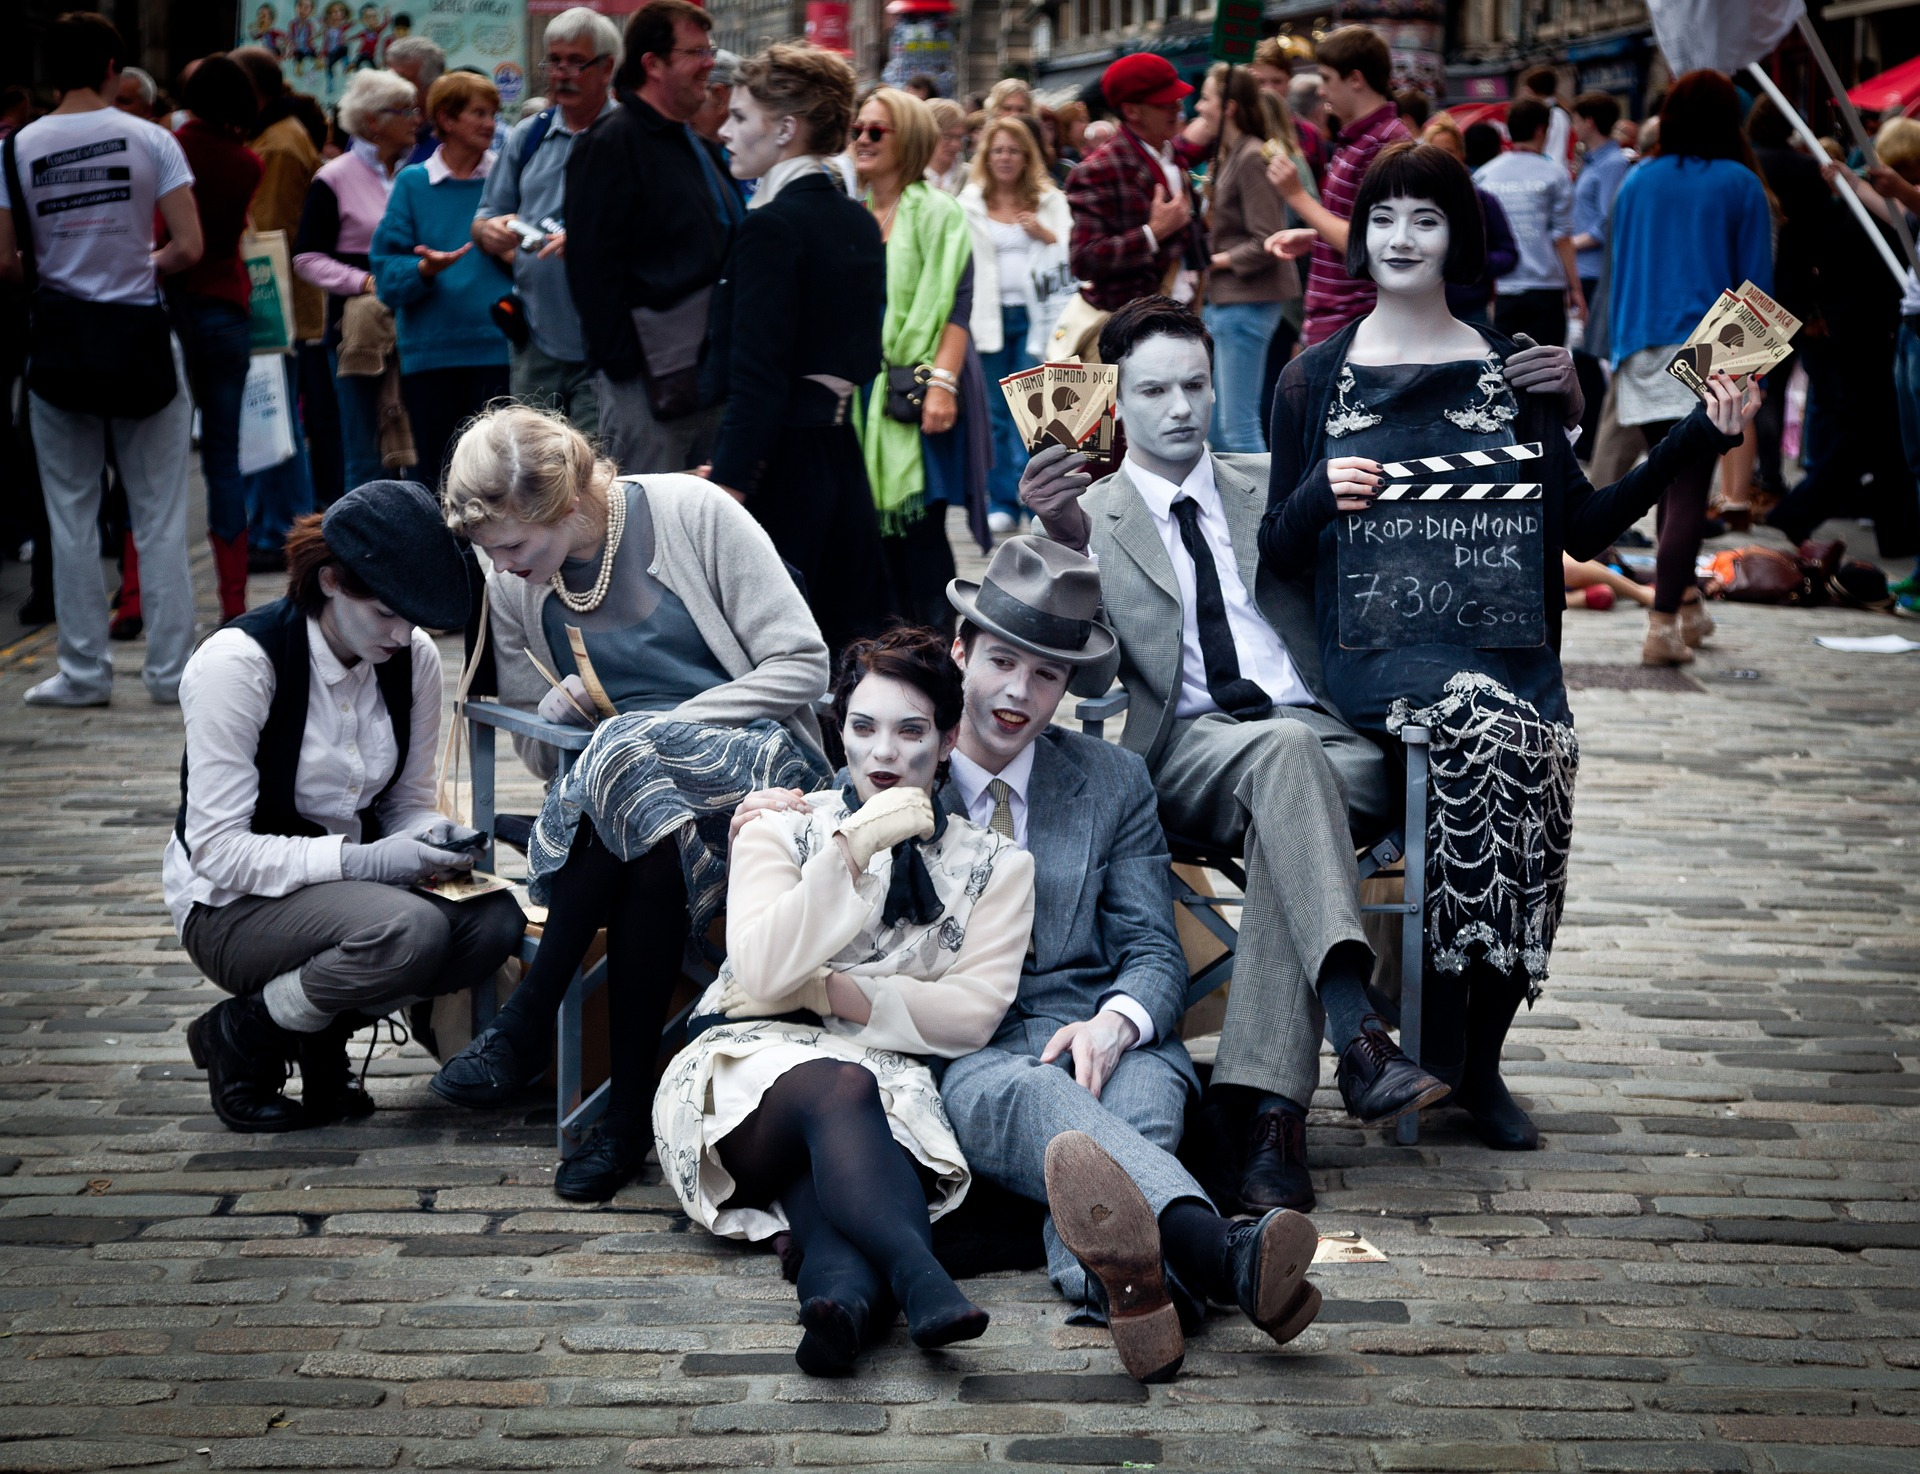 Edinburgh Fringe Festival Ultimate Guide